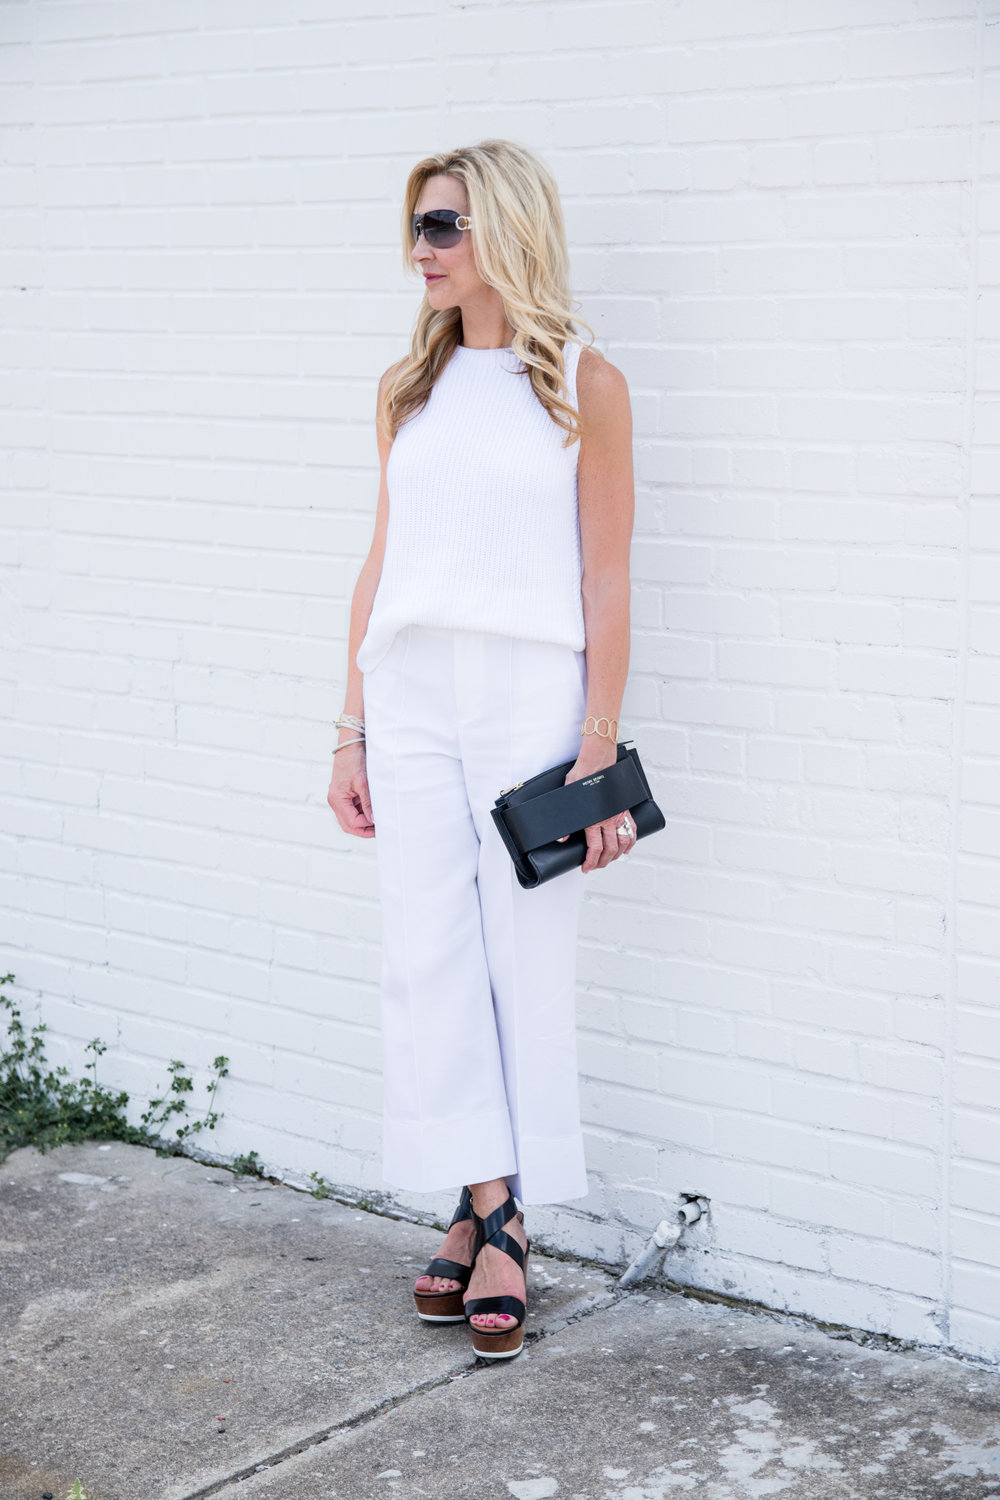 White outfit with black accessories